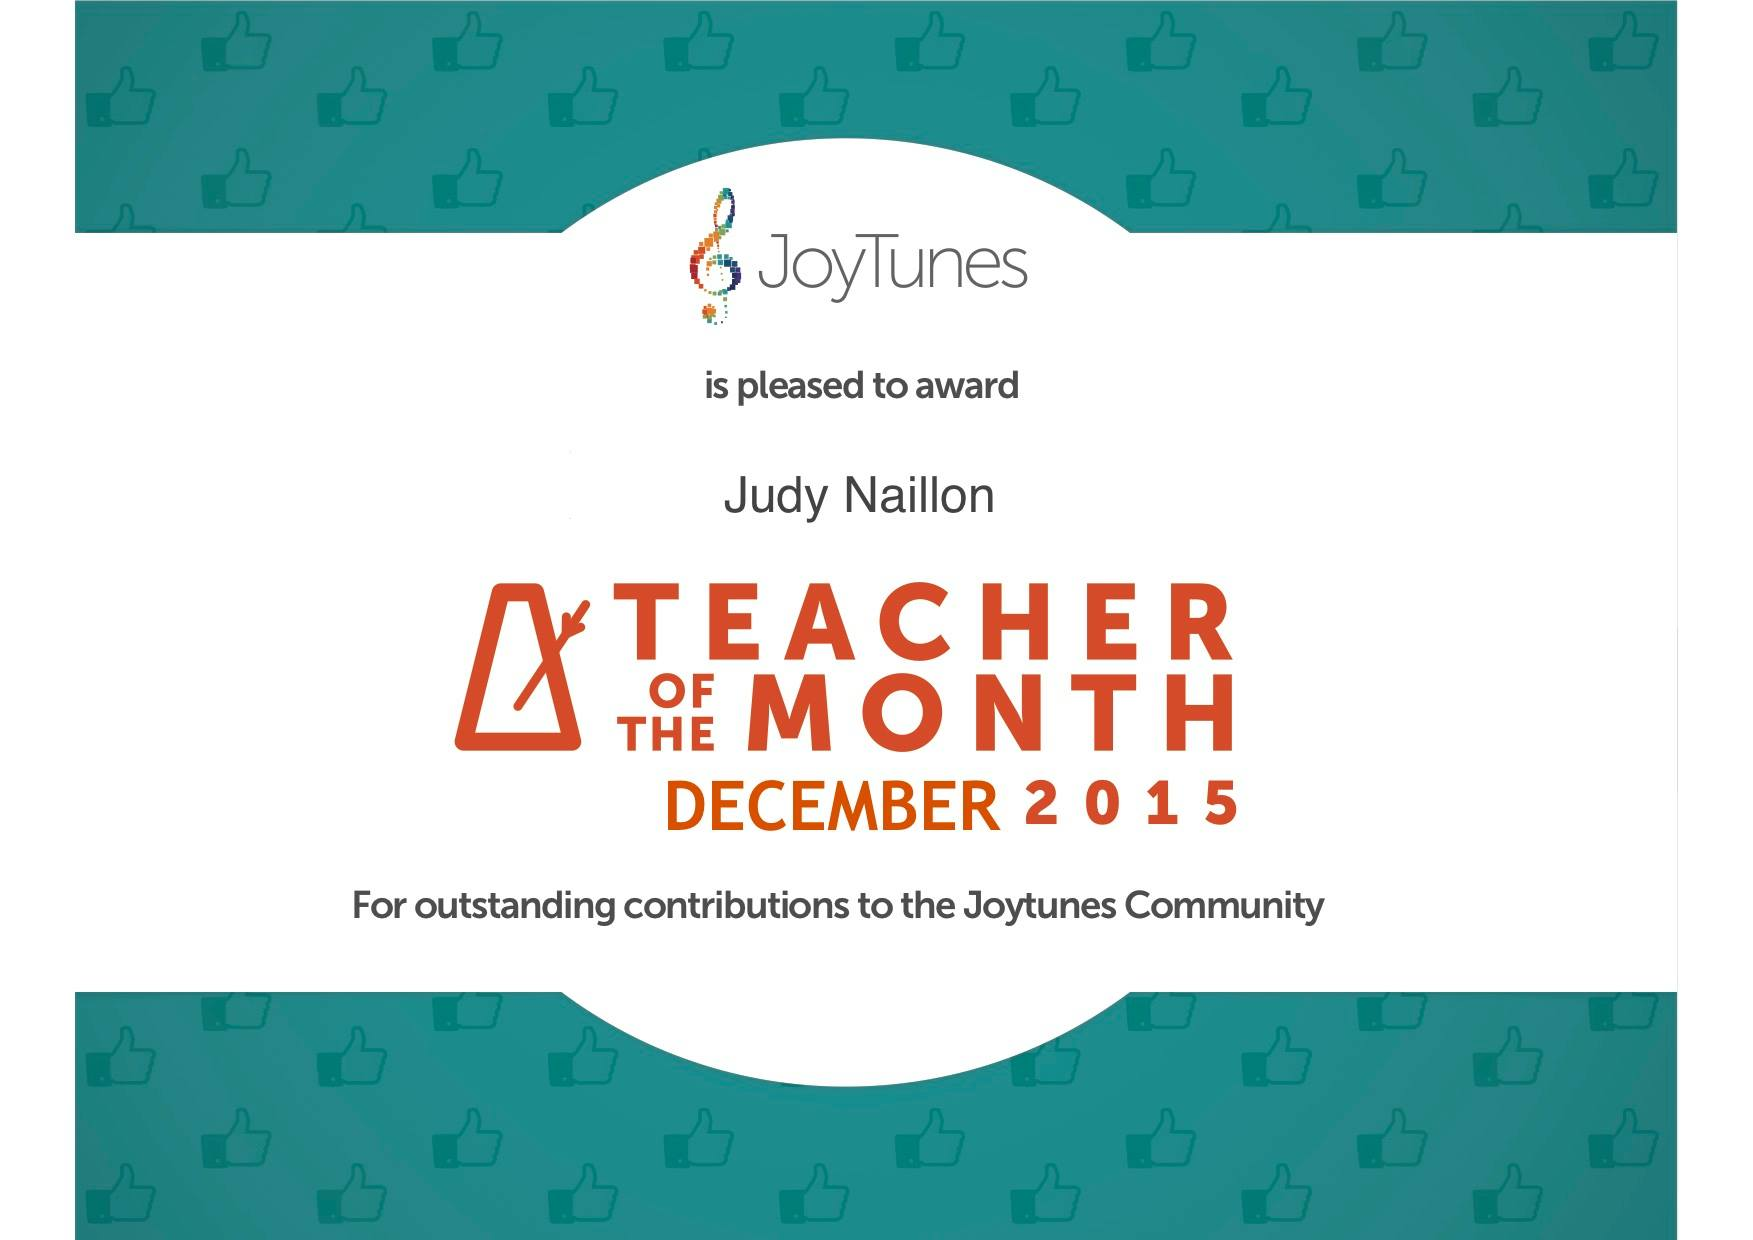 Joy tunes teacher of the month